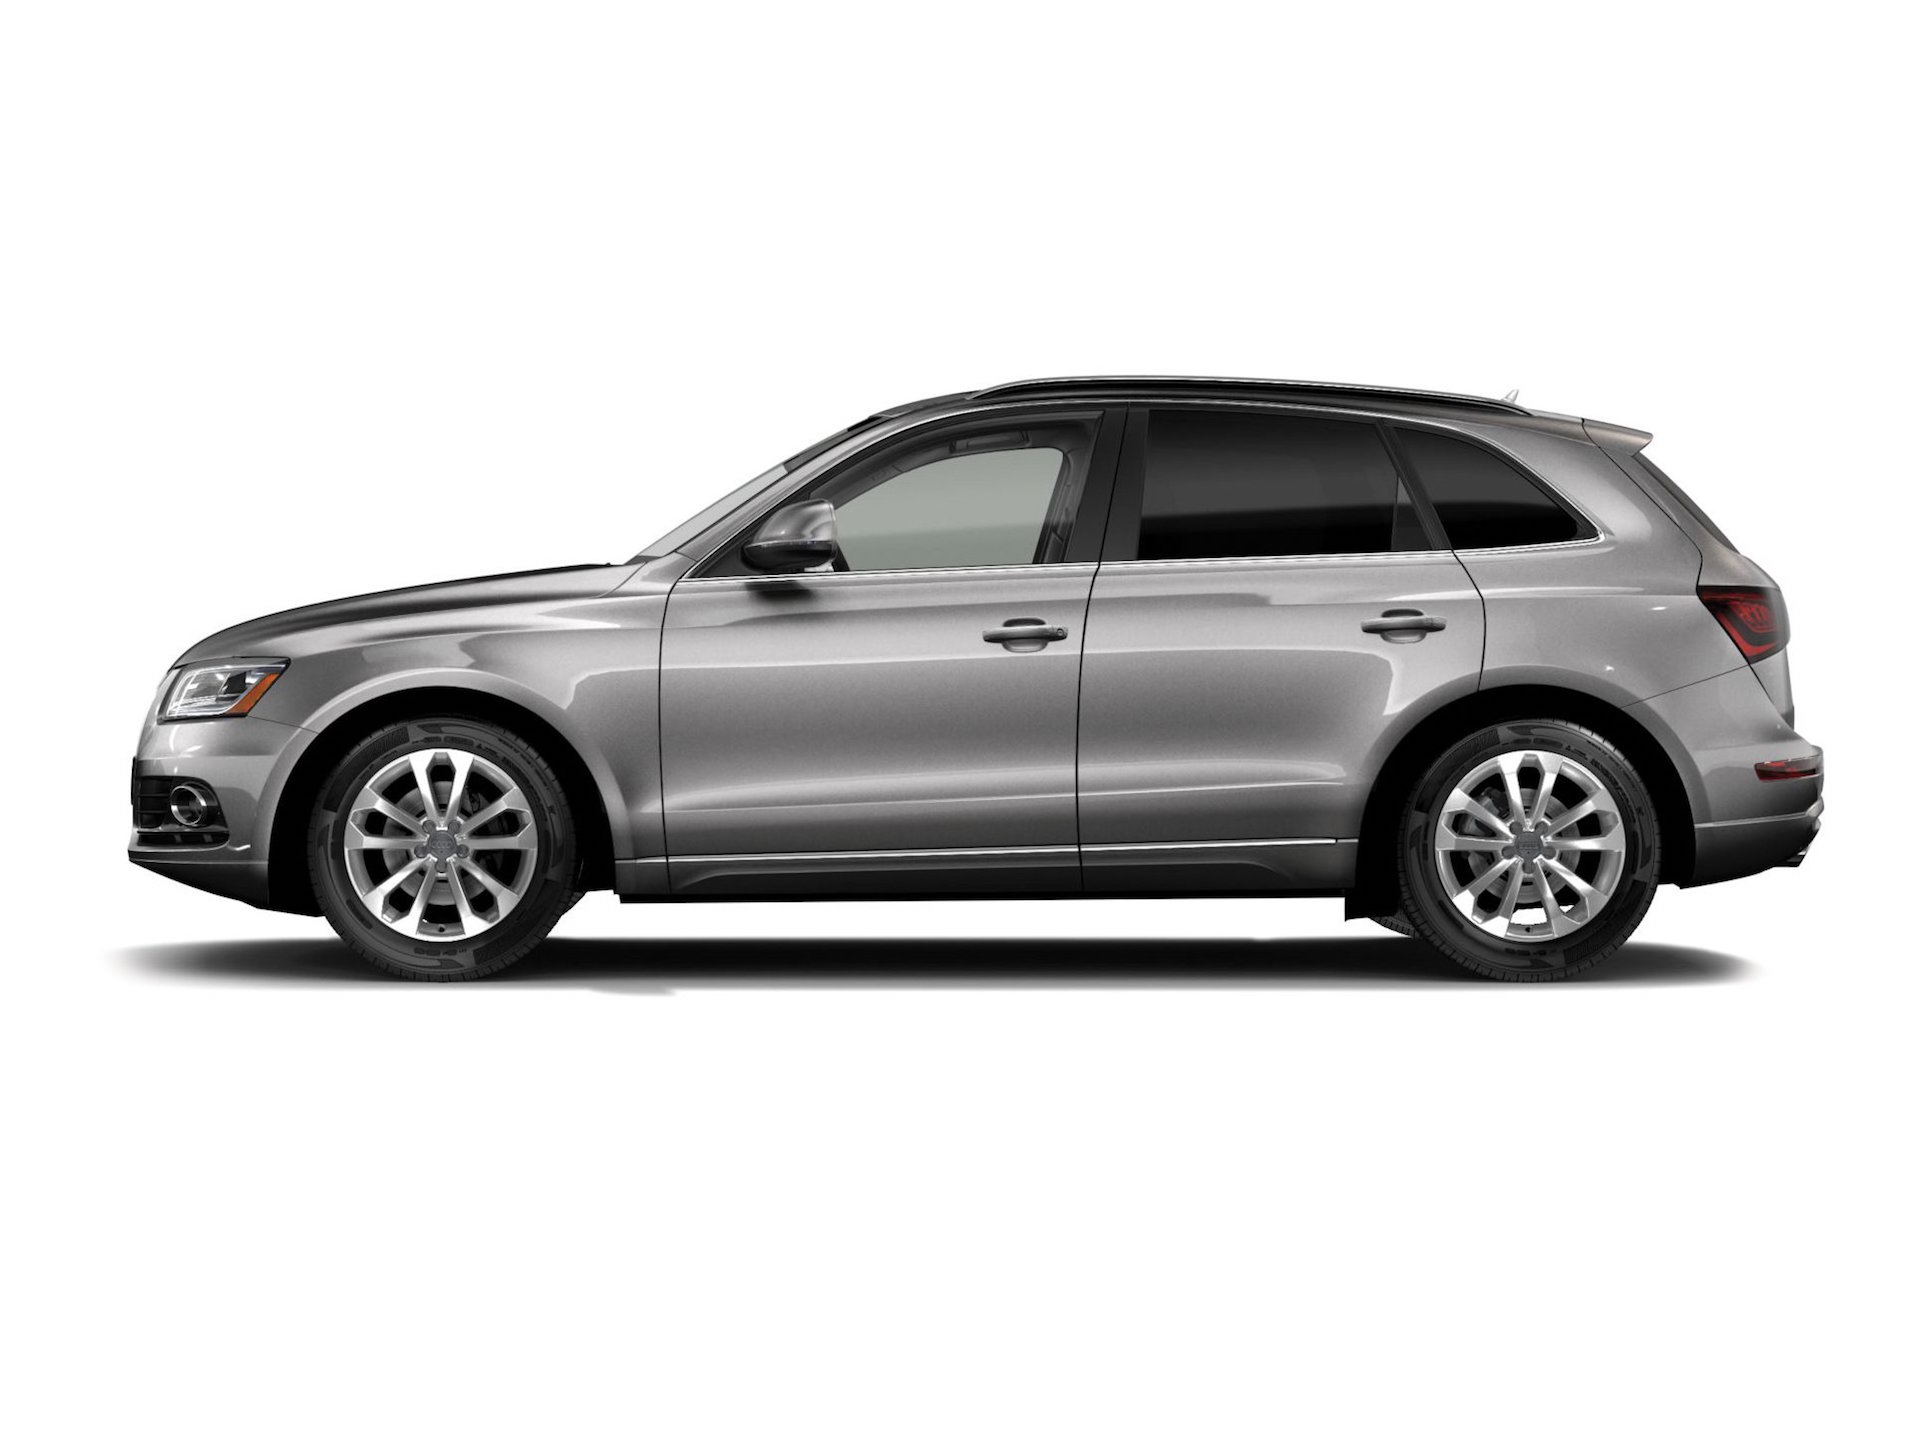 2017 audi q5 prices and expert review the car connection. Black Bedroom Furniture Sets. Home Design Ideas